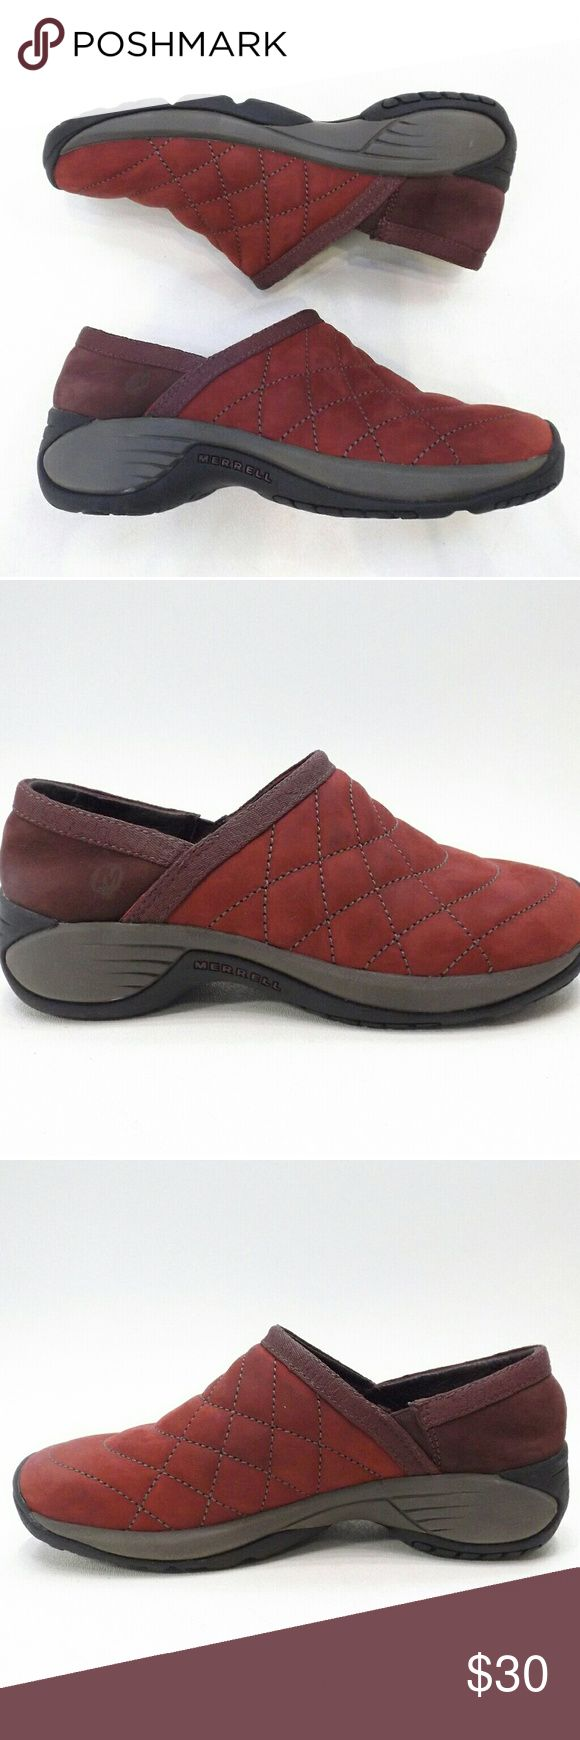 10366 Best My Posh Picks Images On Pinterest Heels Shoes Flash  Olivia Sneakers Quilted Red Leather Merrell Slip Style Athletic With Uppers And Synthetic Soles